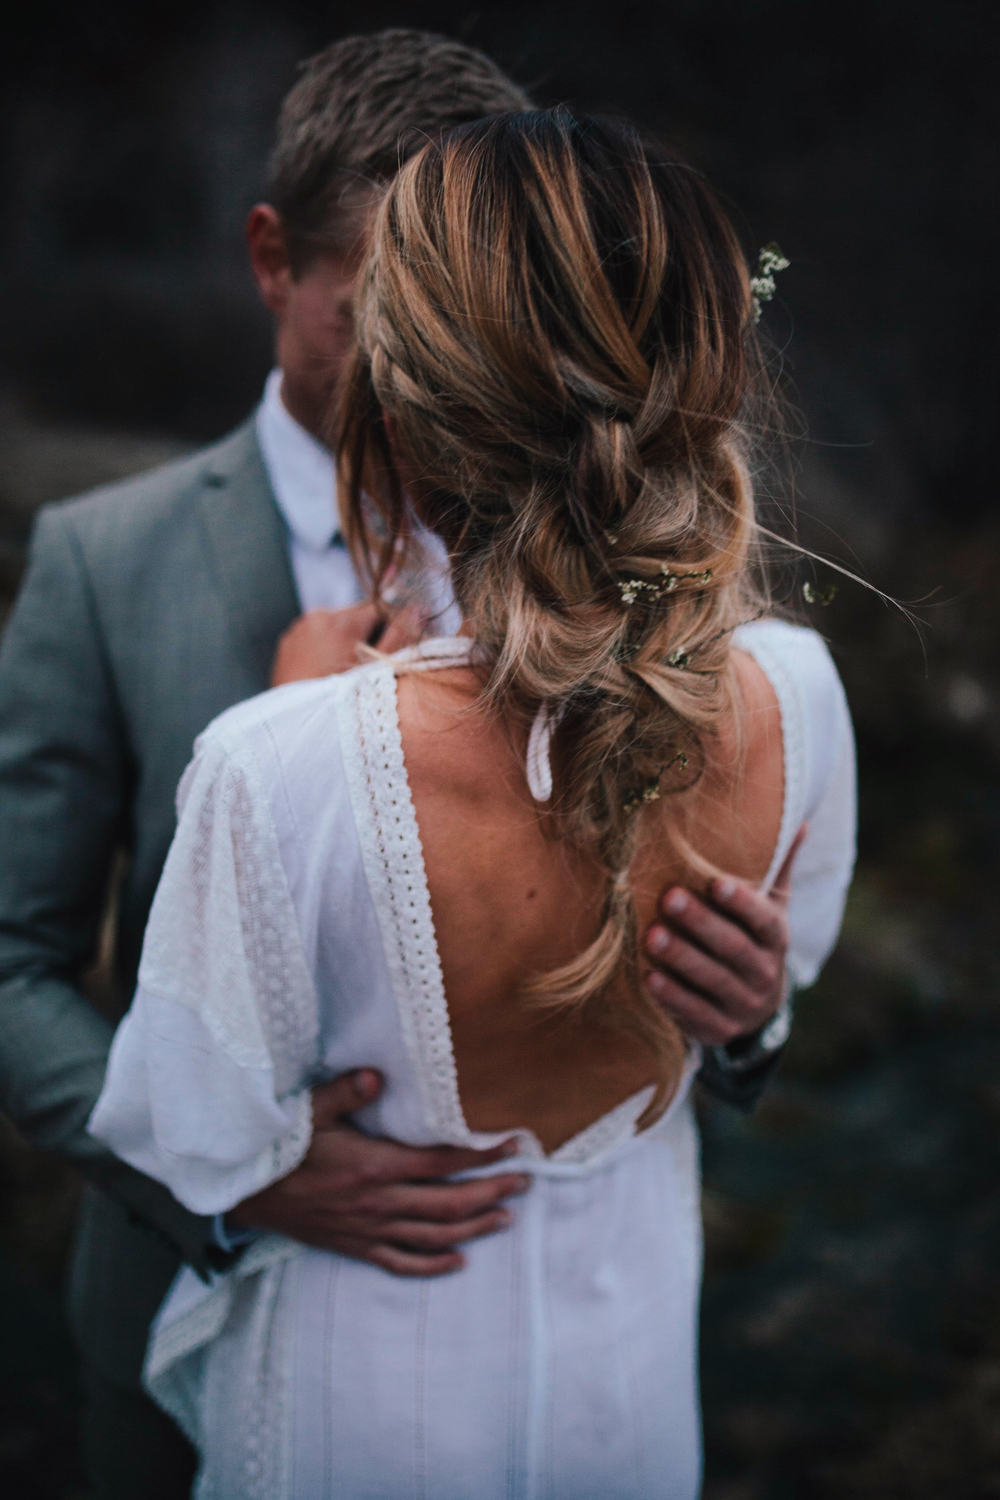 Candace & Thomas - Stylized Elopement - Whitney Justesen Photography-105.jpg